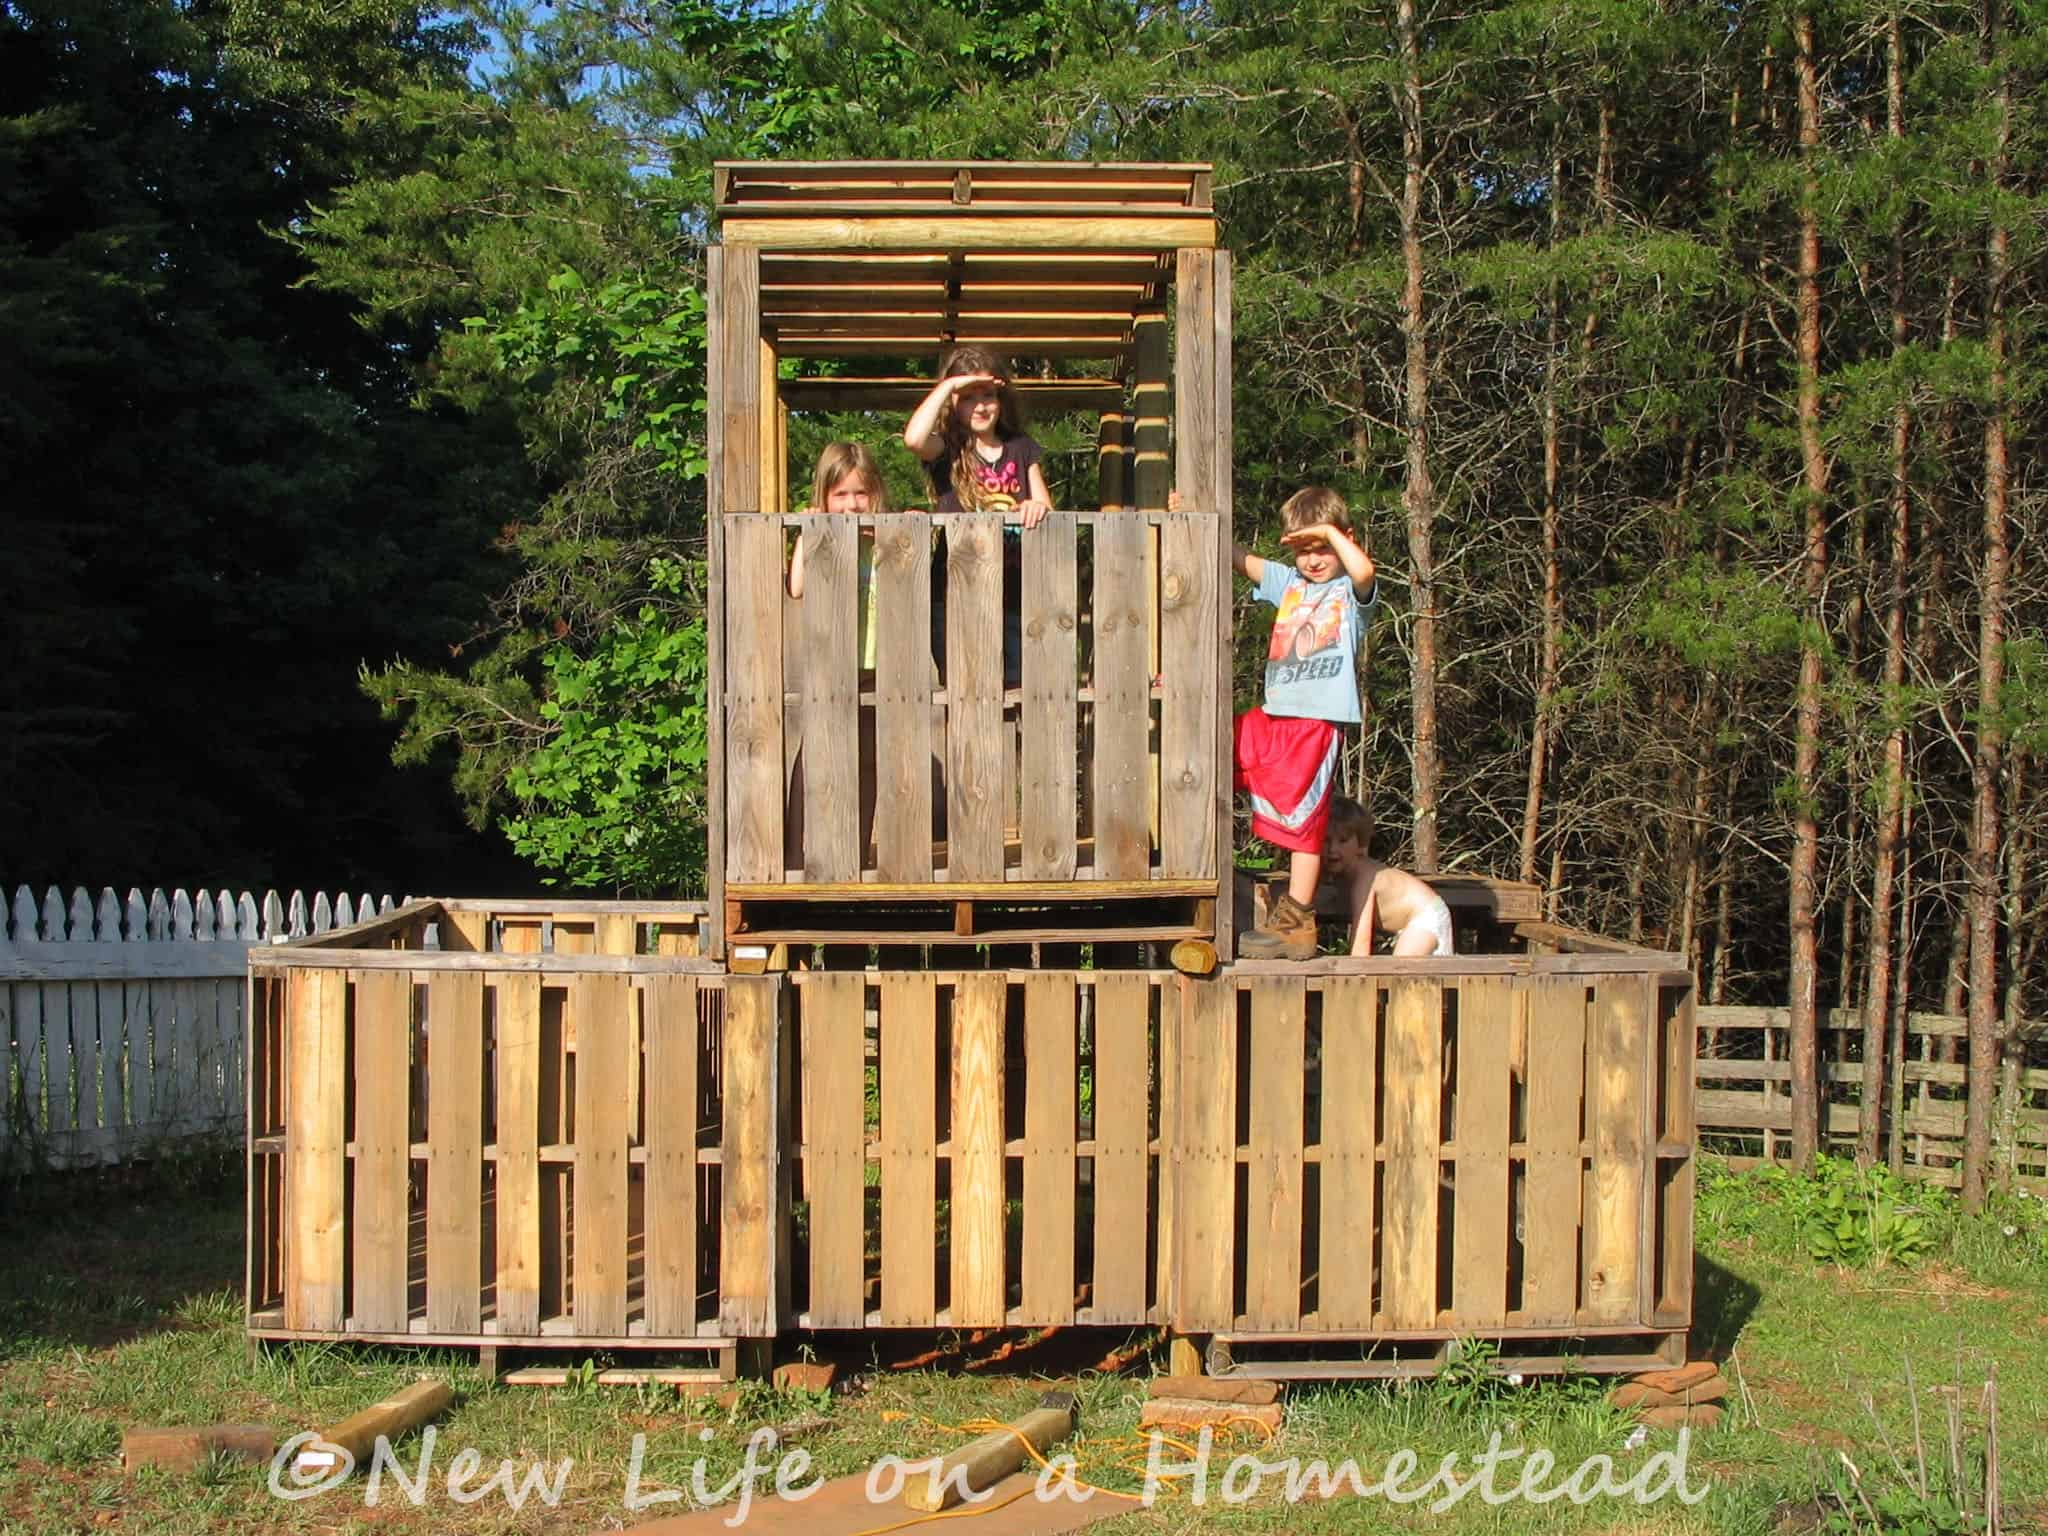 The pallet fort new life on a homestead homesteading blog for How to make a playhouse out of wood